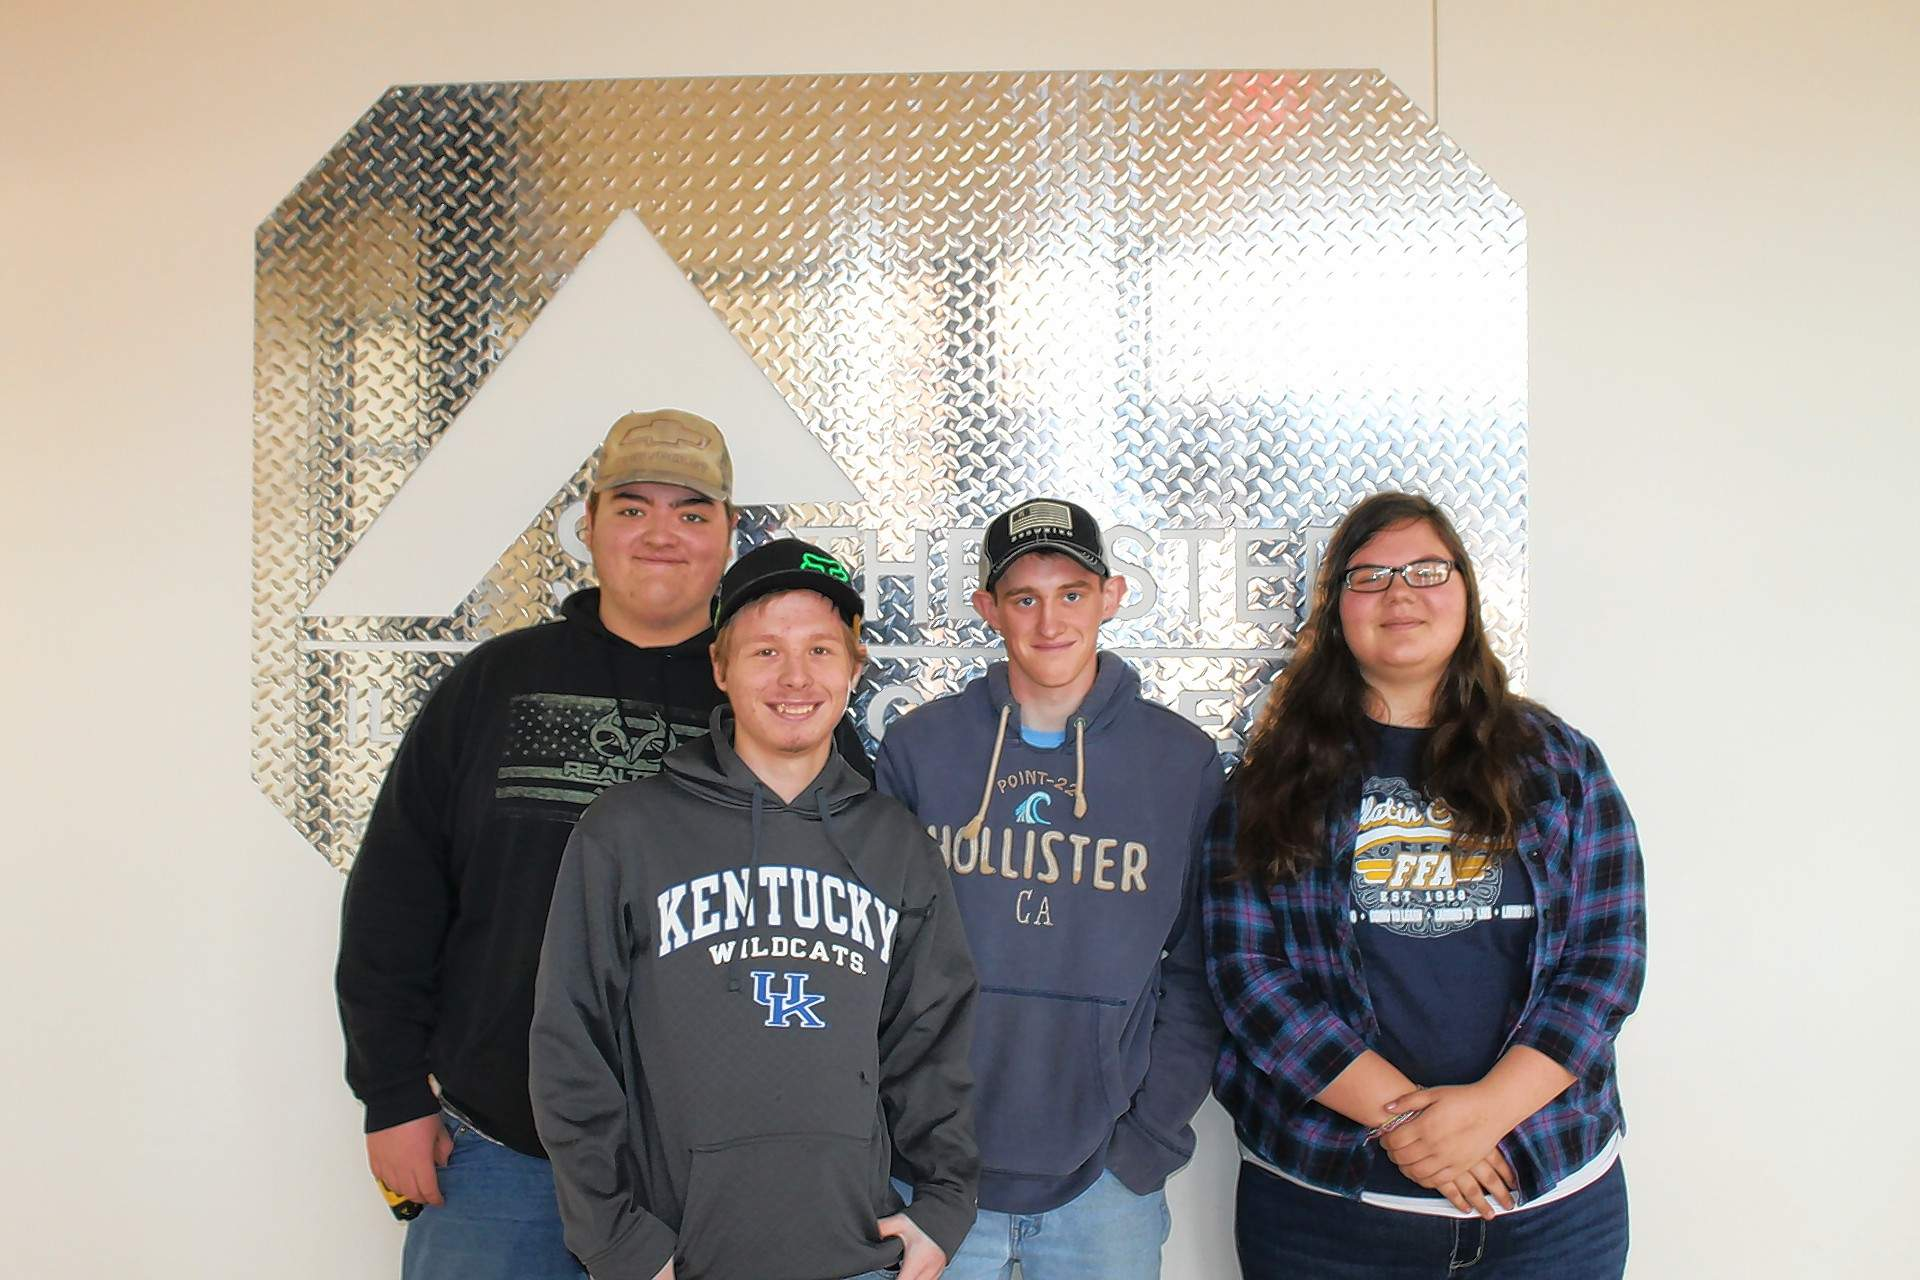 Gallatin County High School's FFA Chapter participated at the 2018 FFA Section 25 Ag Mechanics Competition at Southeastern Illinois College. Pictured are (not in order): Logan Arnett, Matt Emerson, Damon Hinton and Aleece Mcloed.